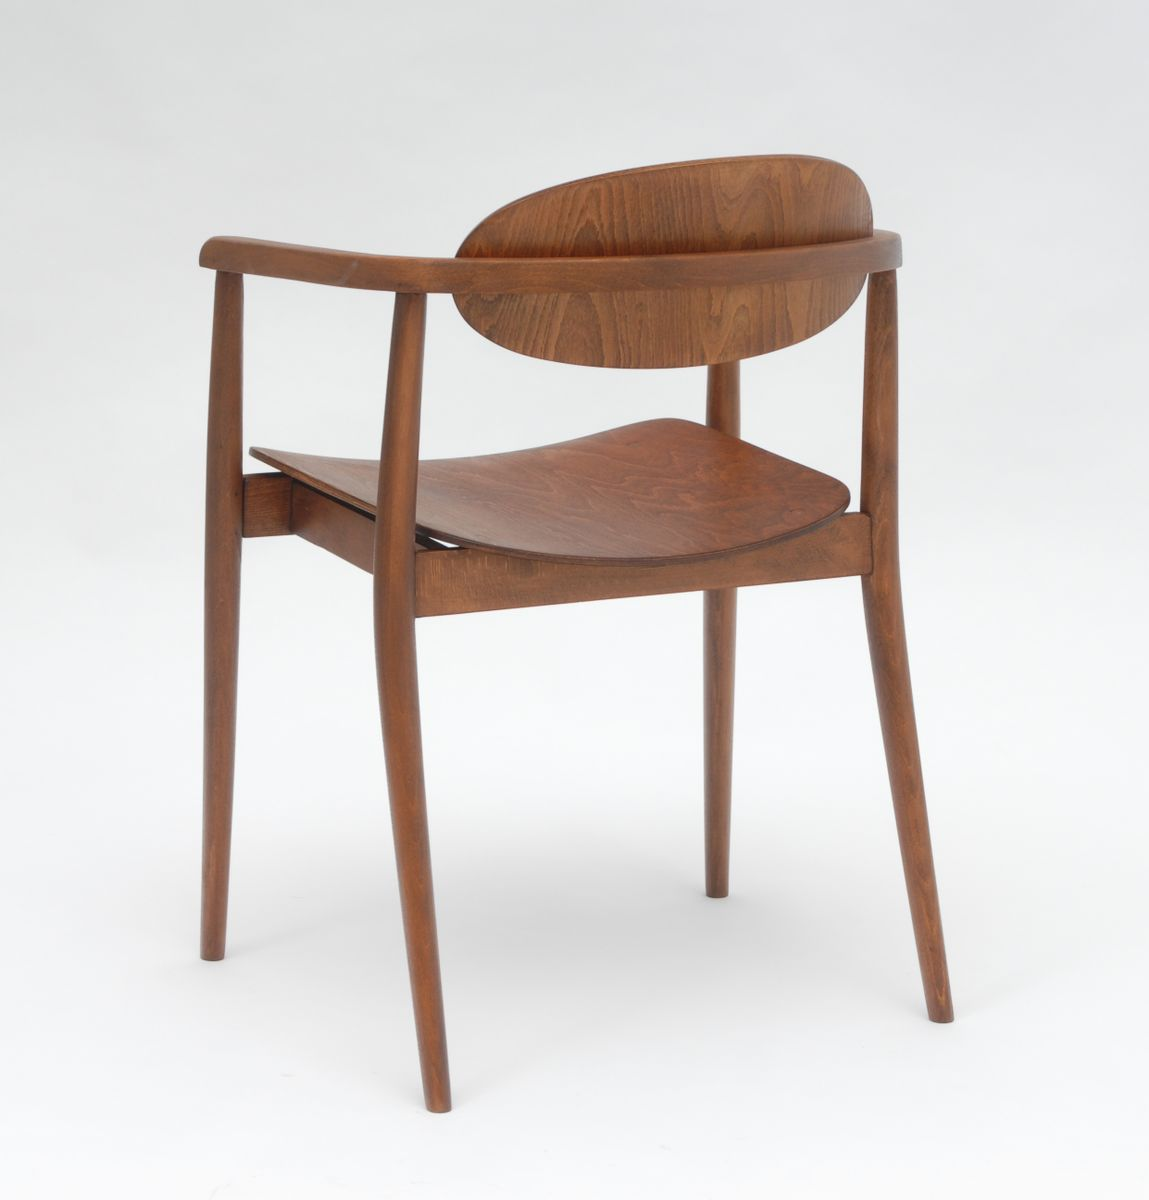 Wooden chairs with armrest - Sold Out